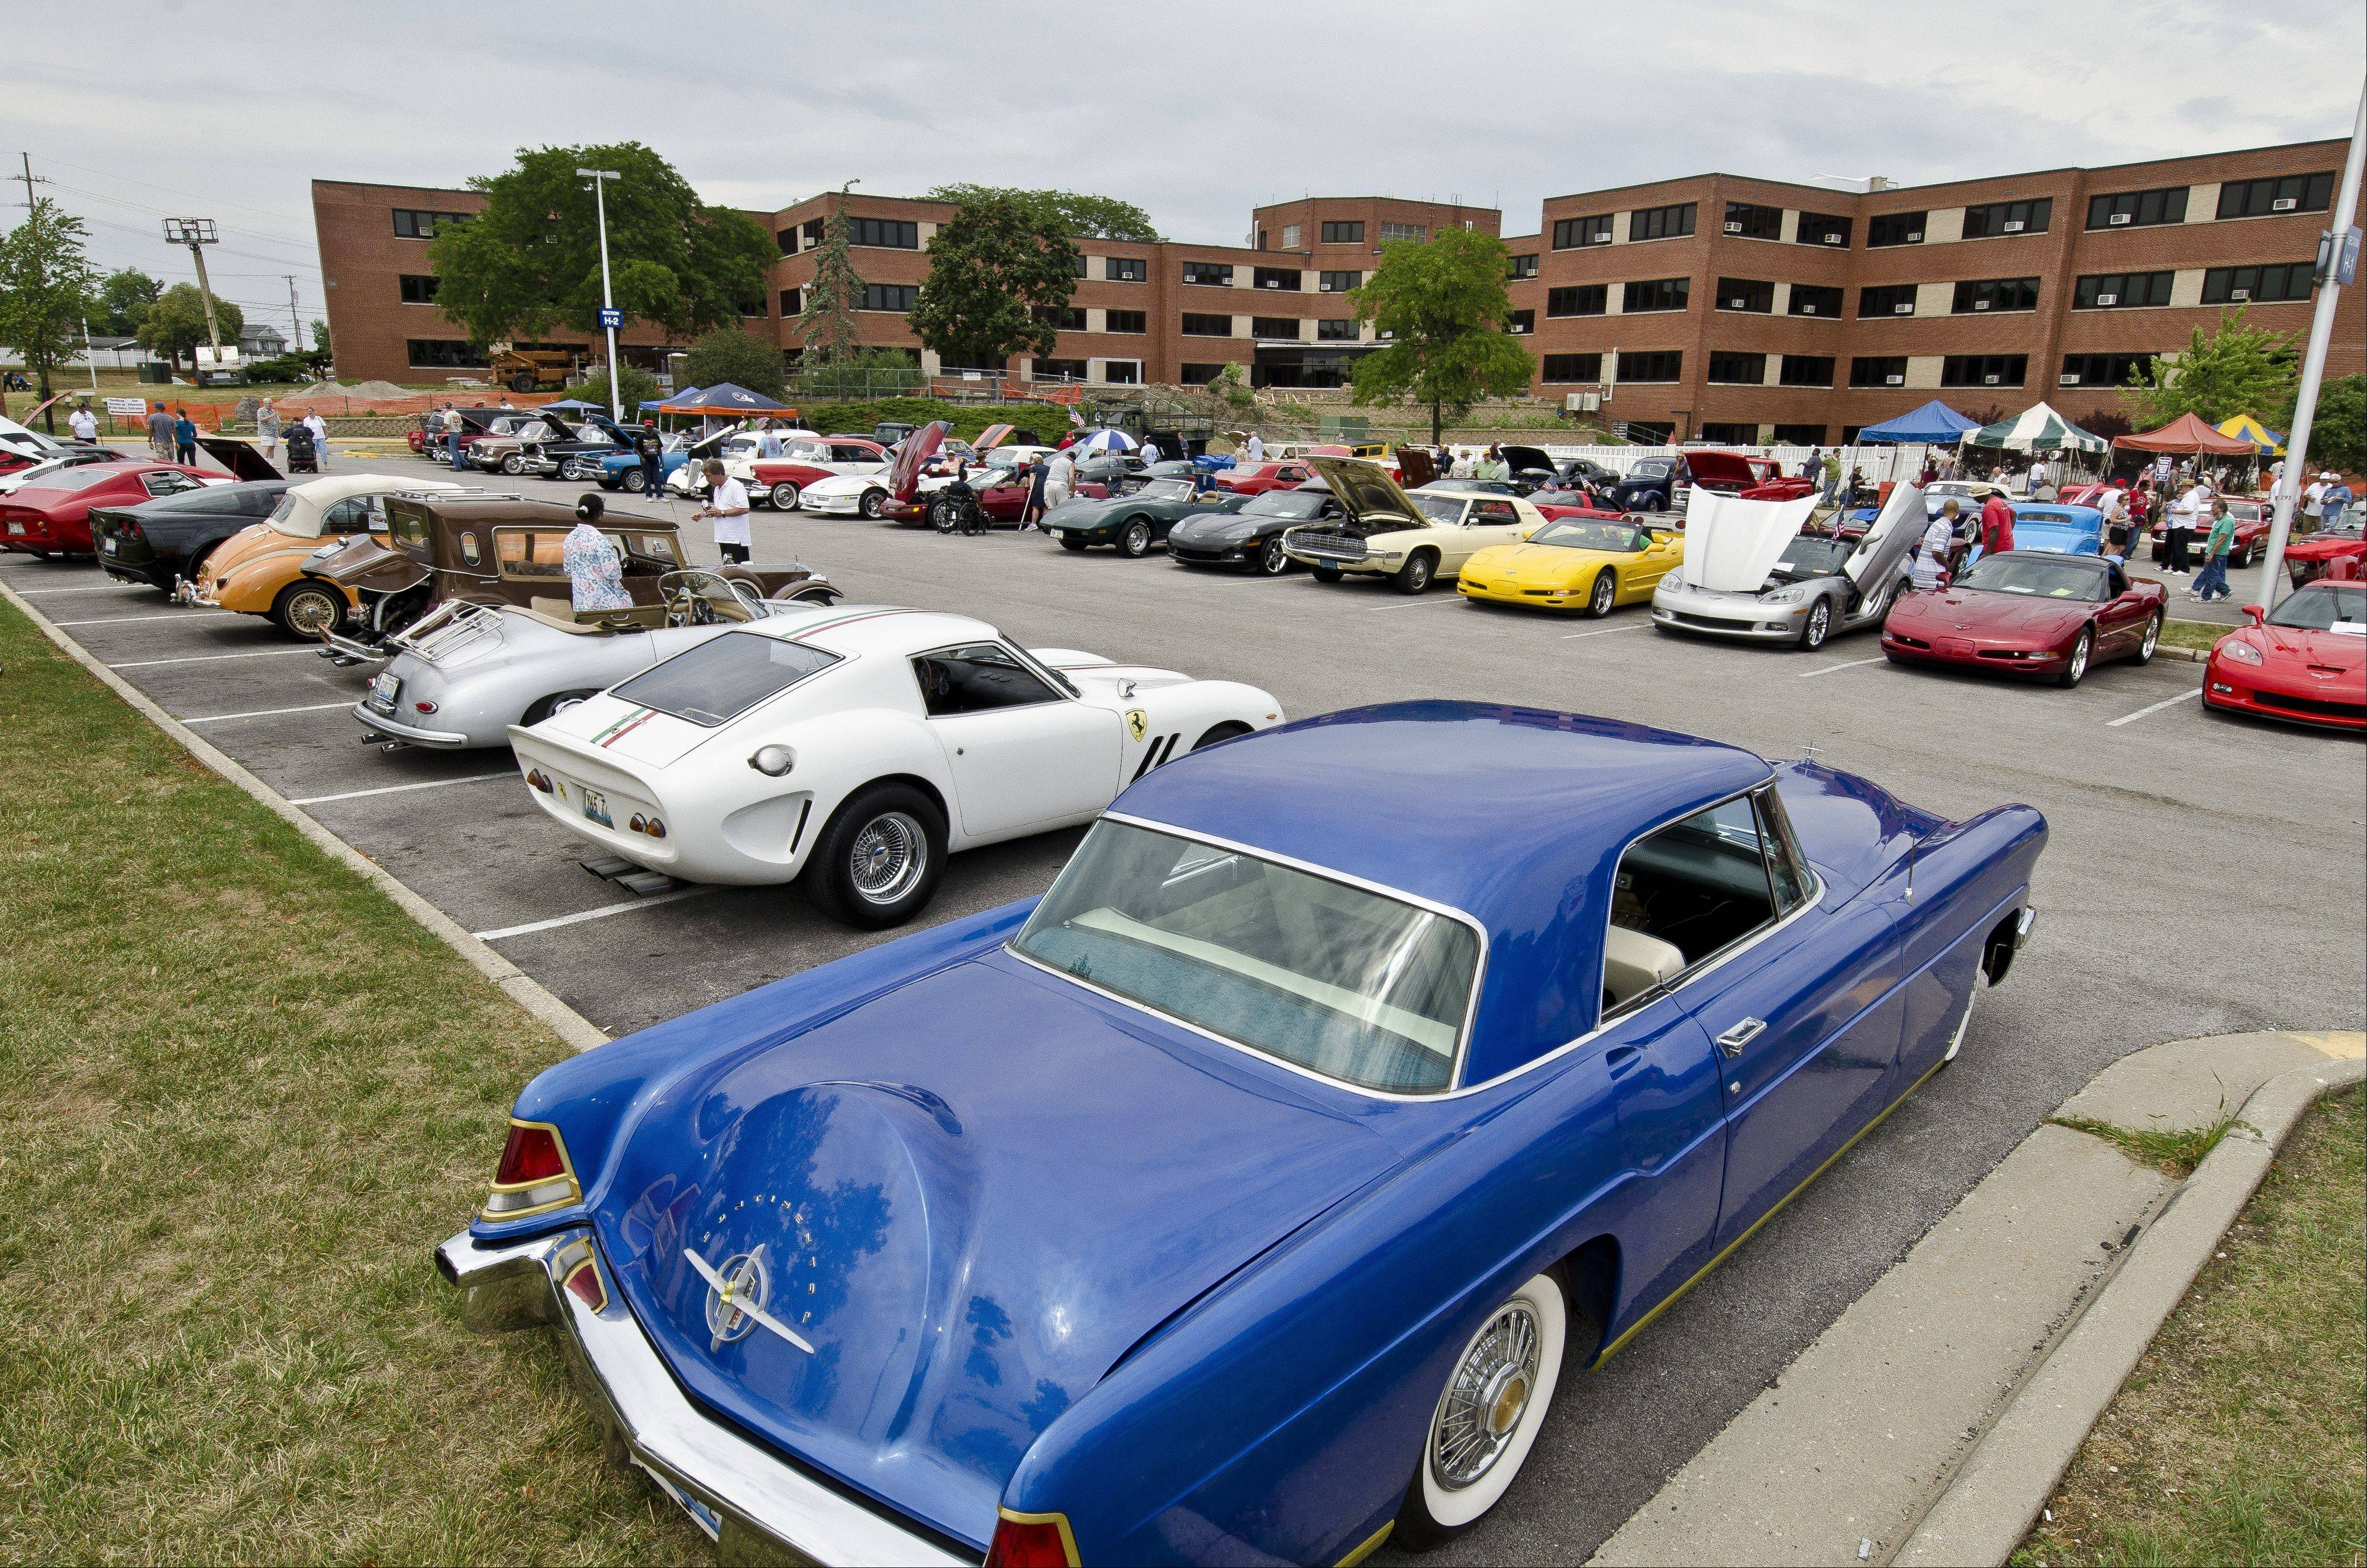 More than 200 show-car owners recently attended the ninth annual event at the veterans hospital at Naval Station Great Lakes.